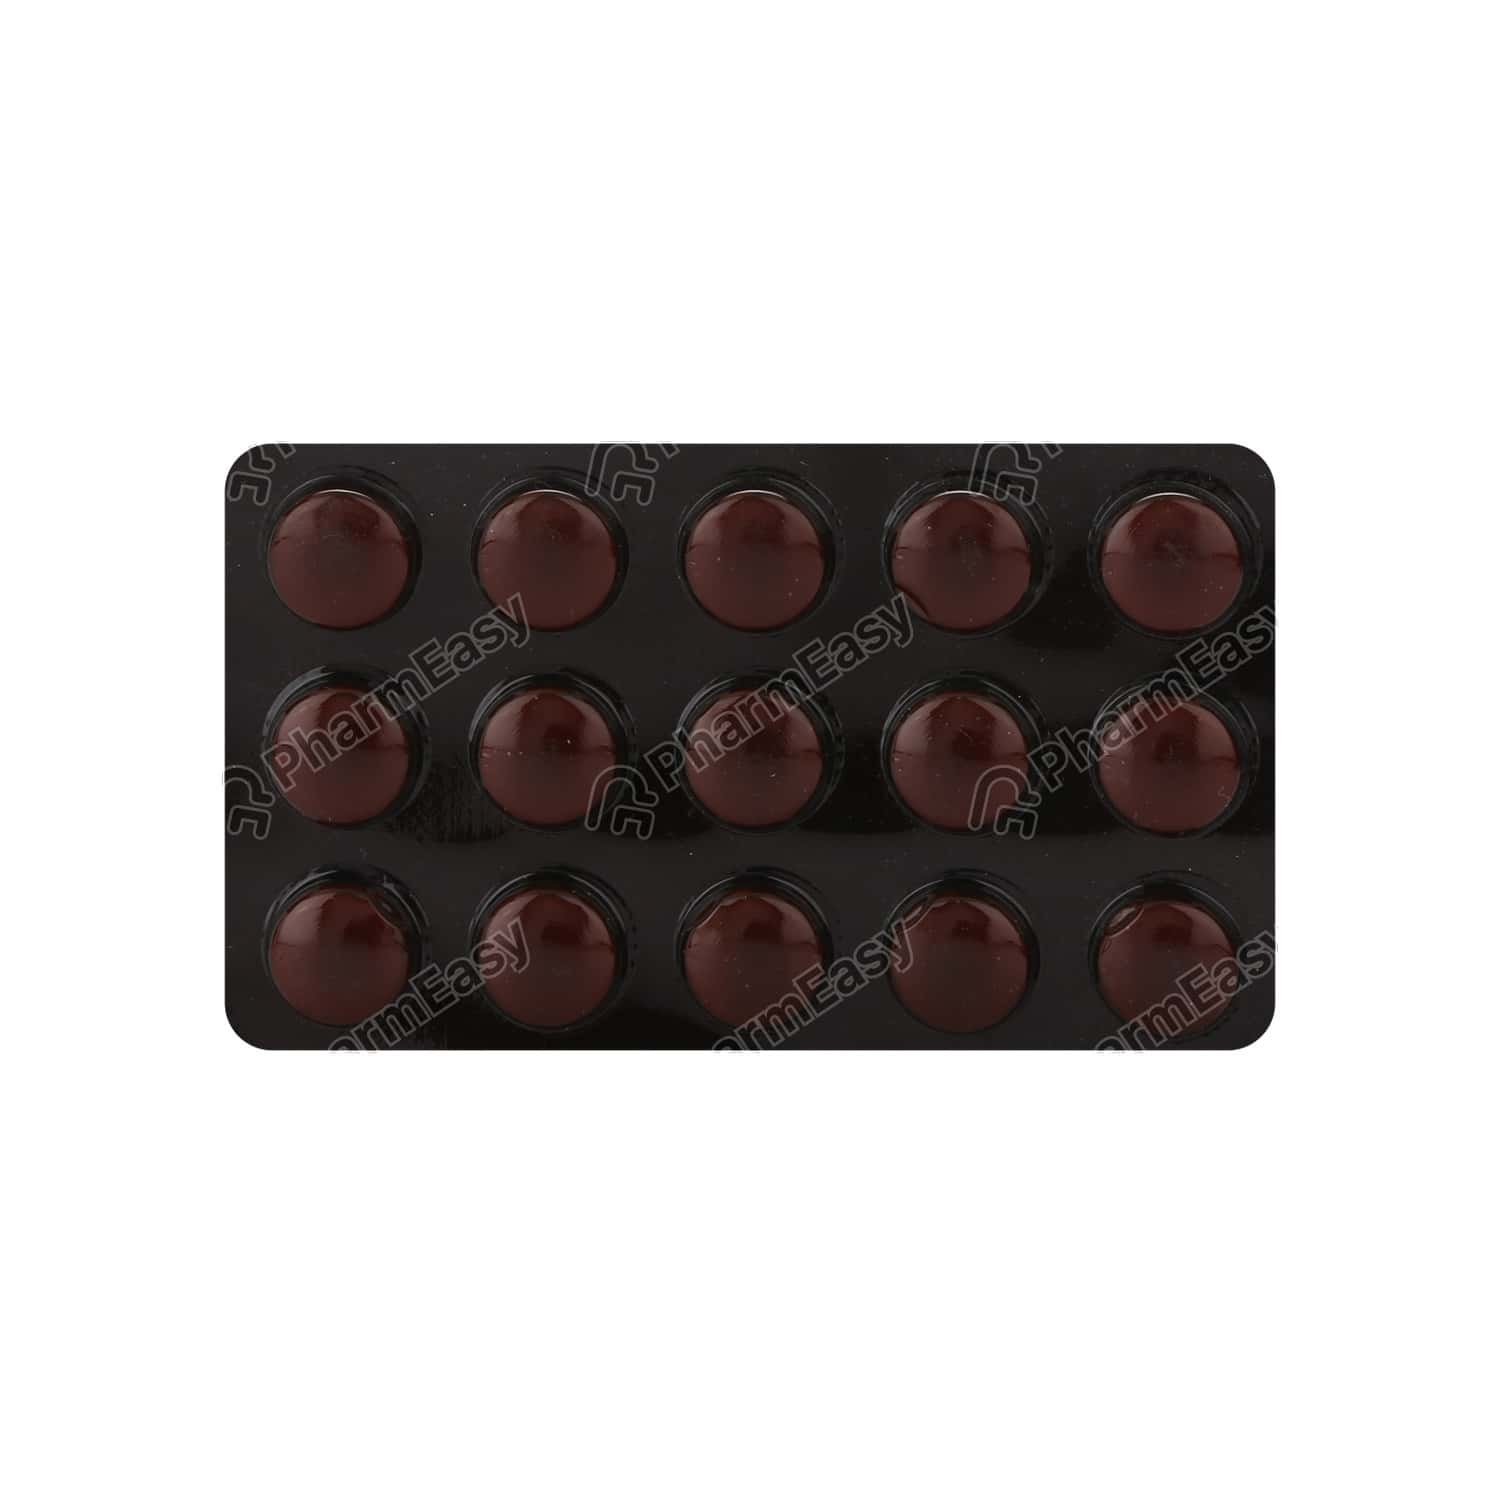 Telma Ln 80mg Tablet